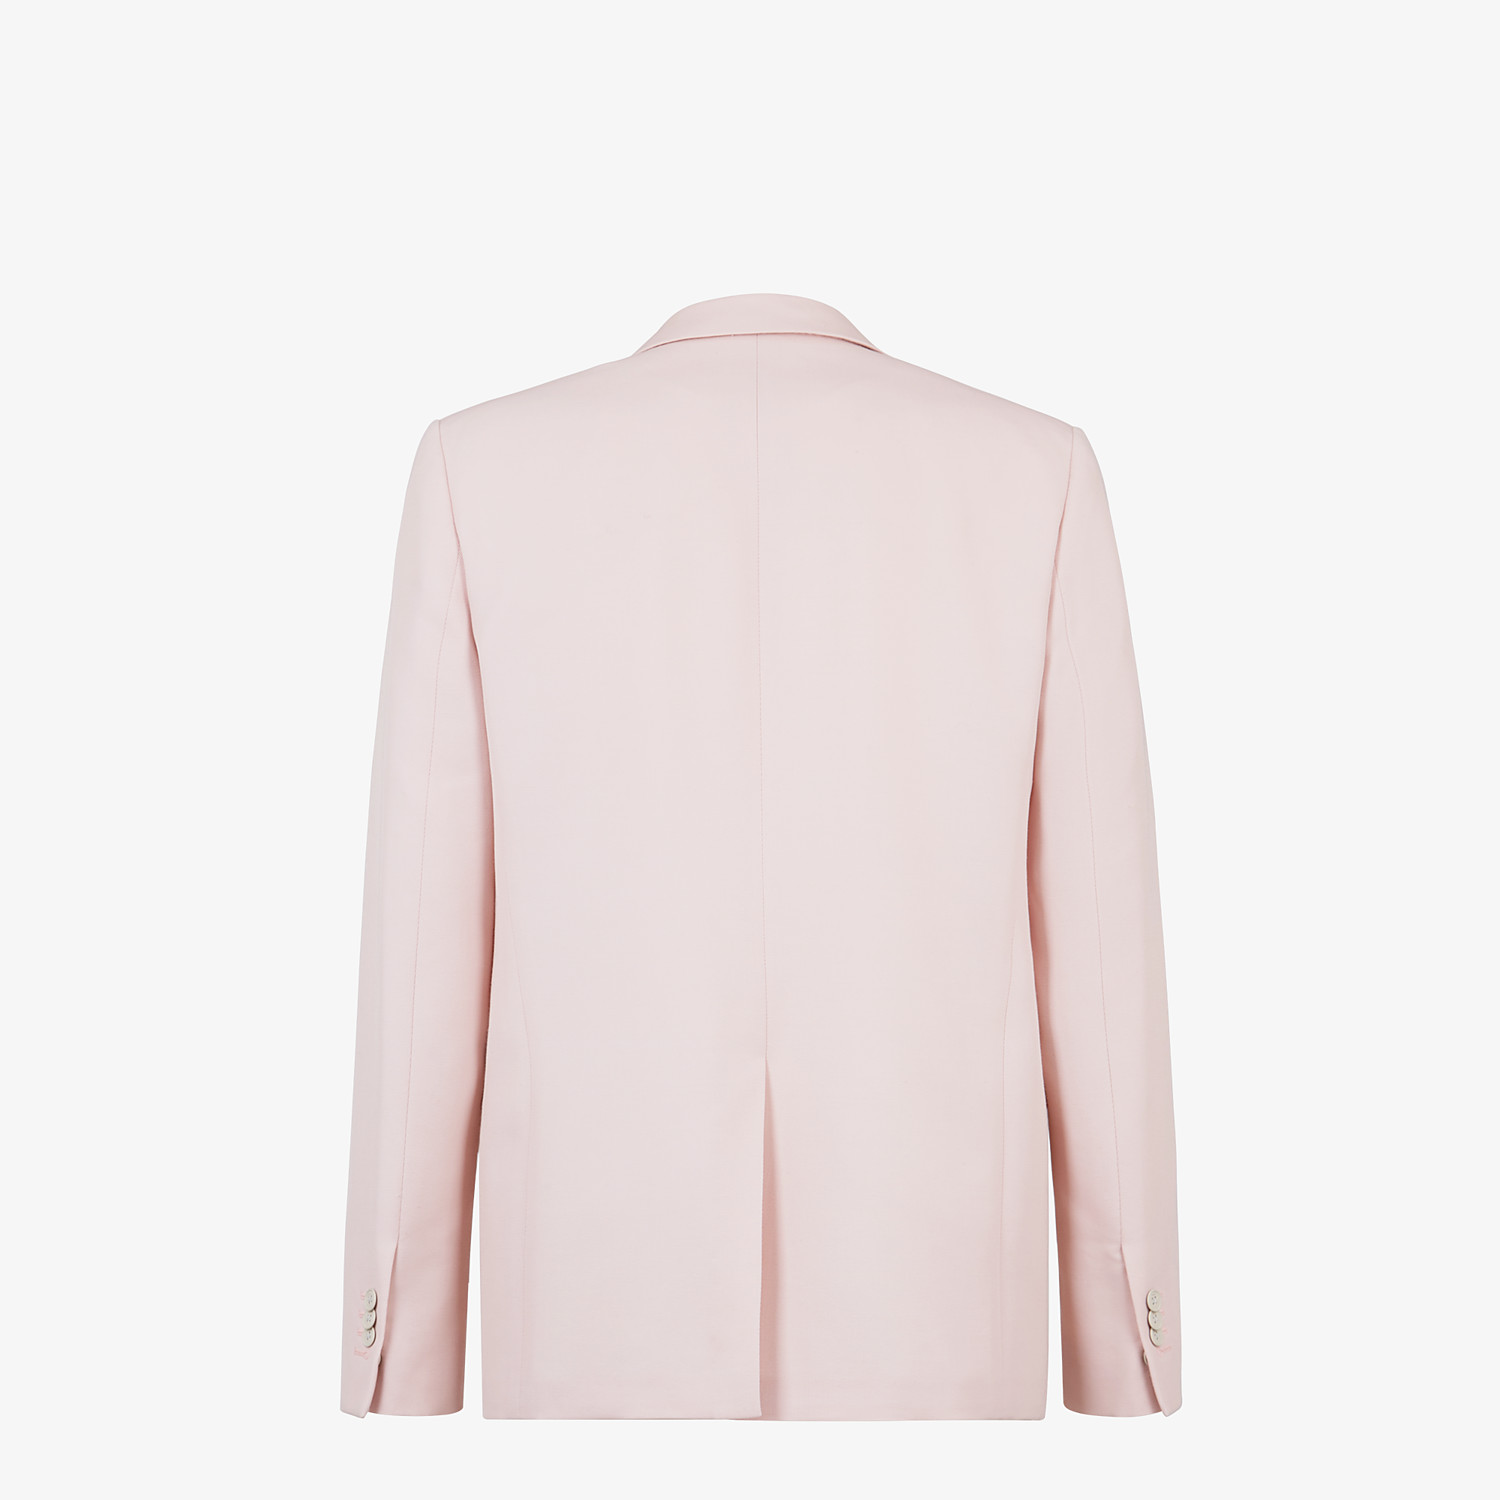 FENDI JACKET - Pink wool blazer - view 2 detail